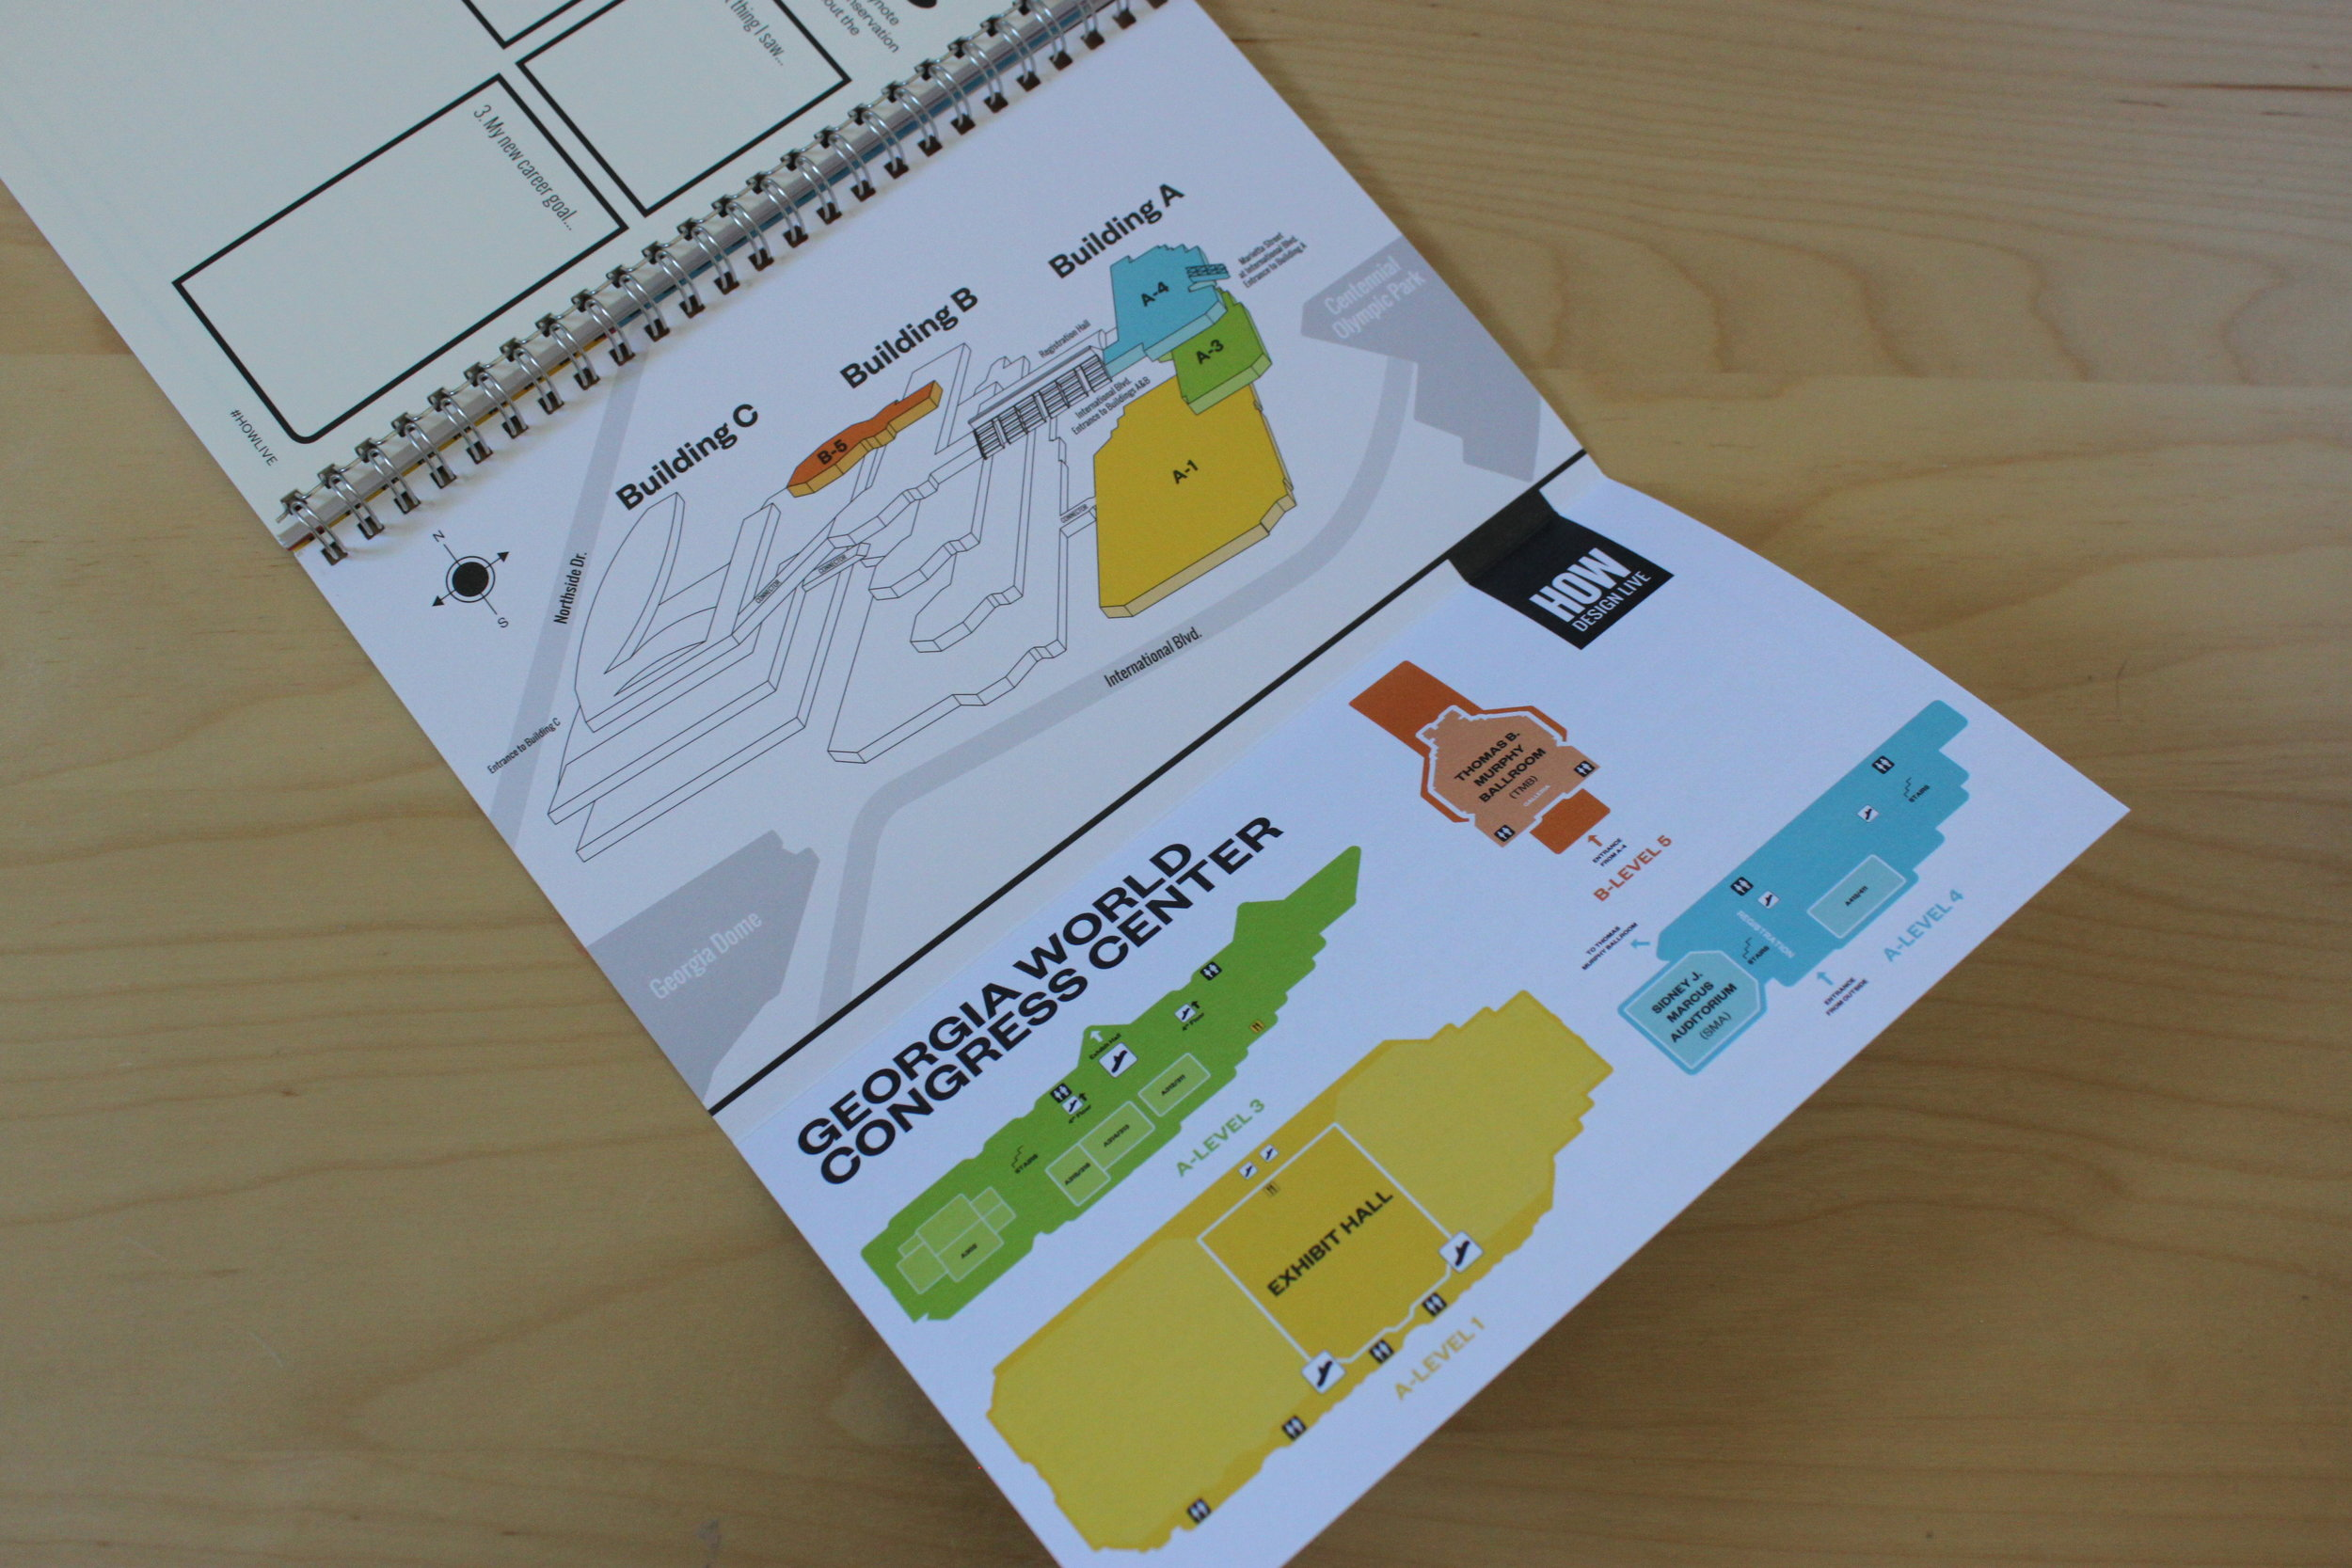 The back flap provided a map of the conference centre.